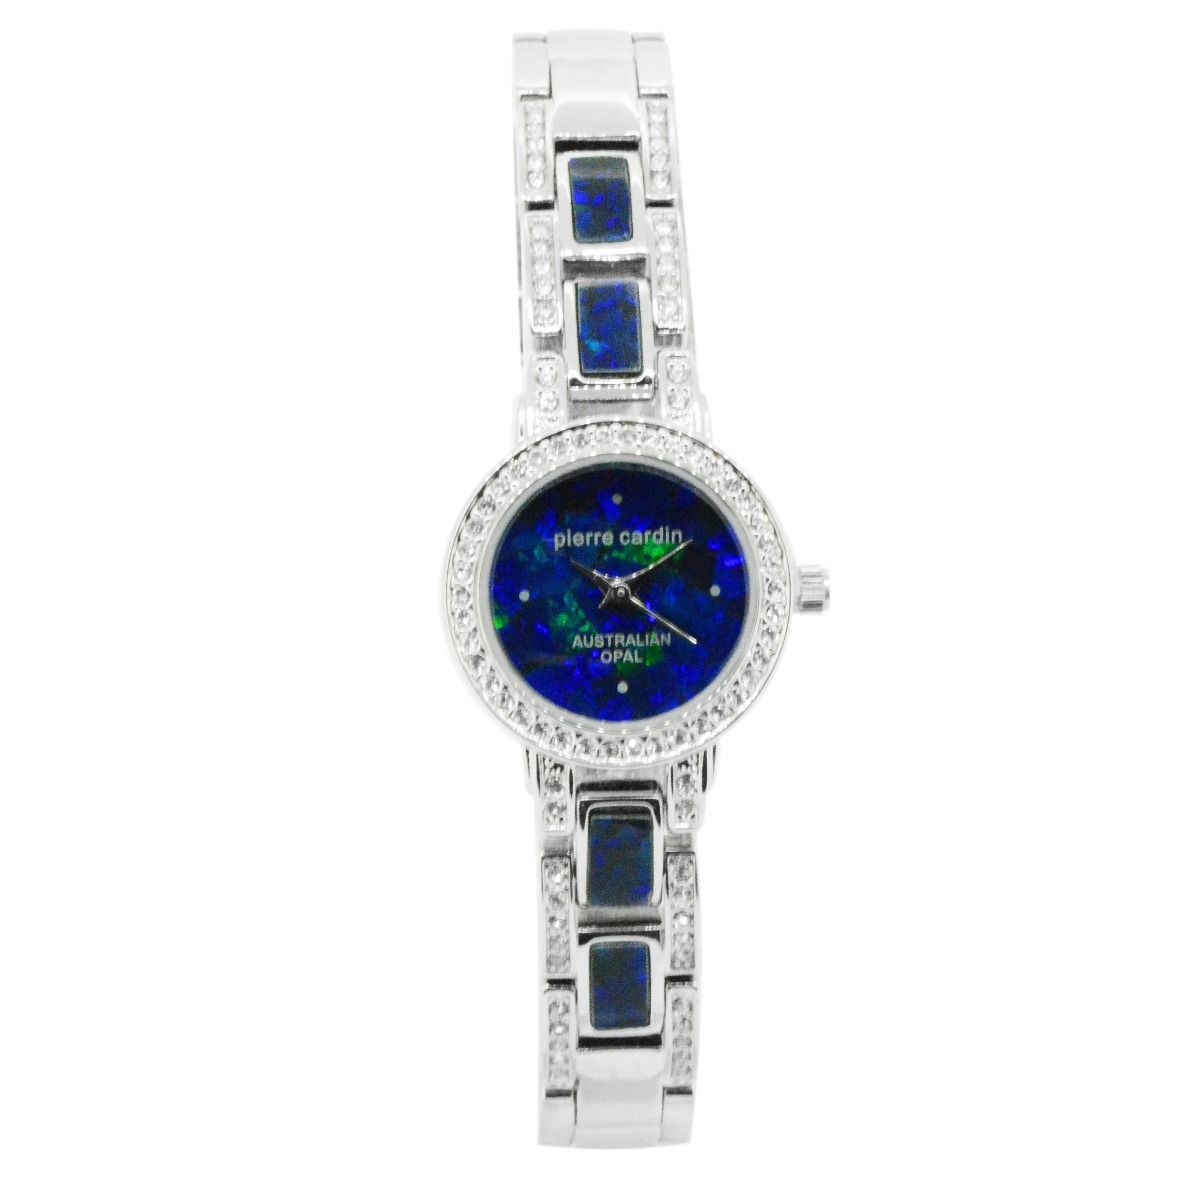 24mm Ladies Pierre Cardin Opal Face Inlay Watch with Czech Crystals